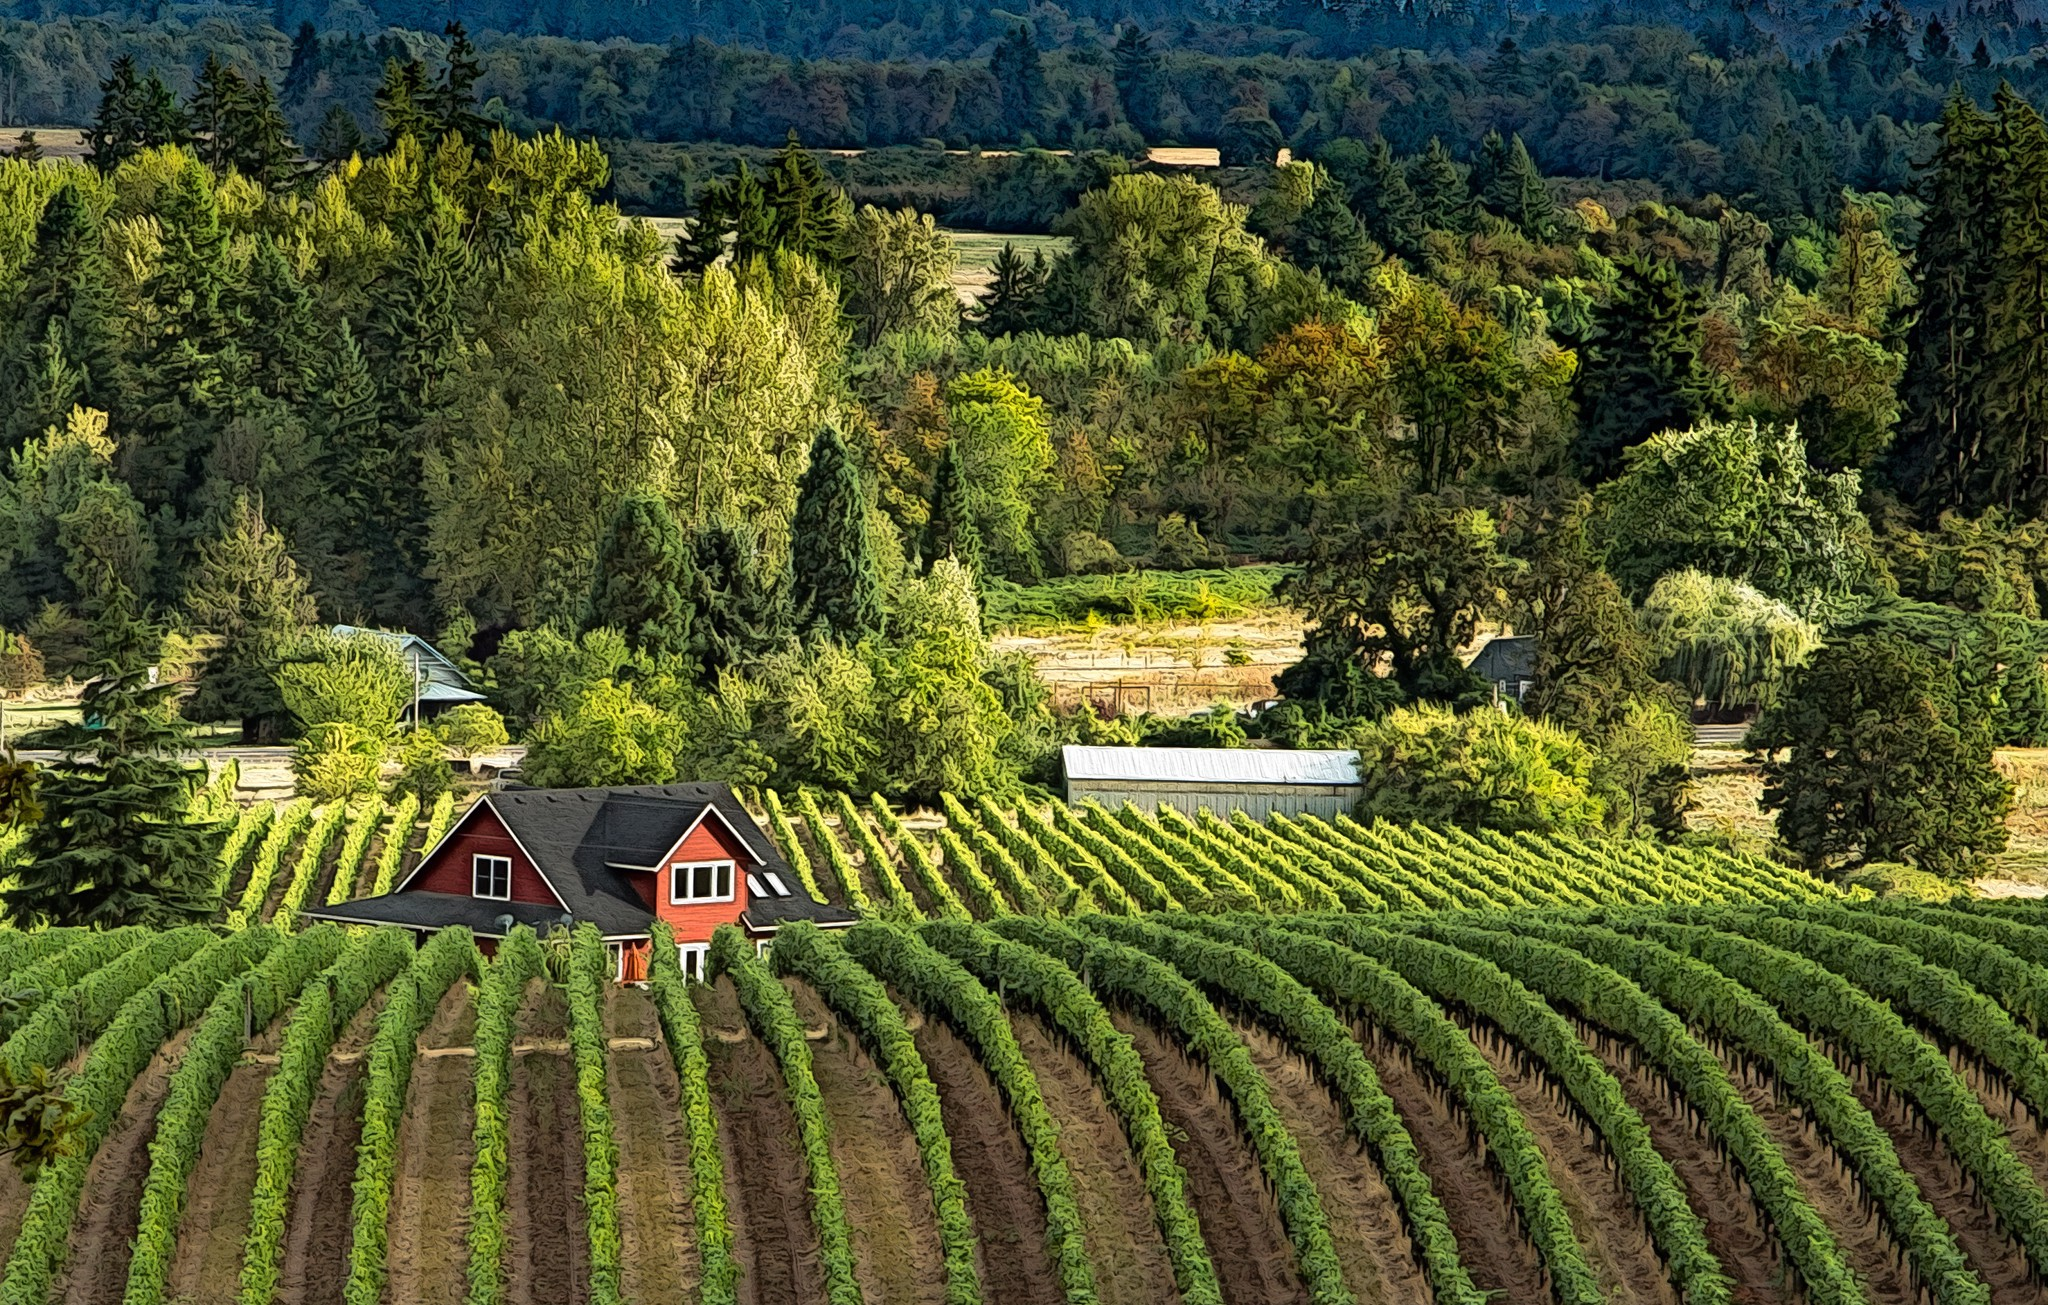 Lush green landscape in the Willamette Valley surrounding a vineyard